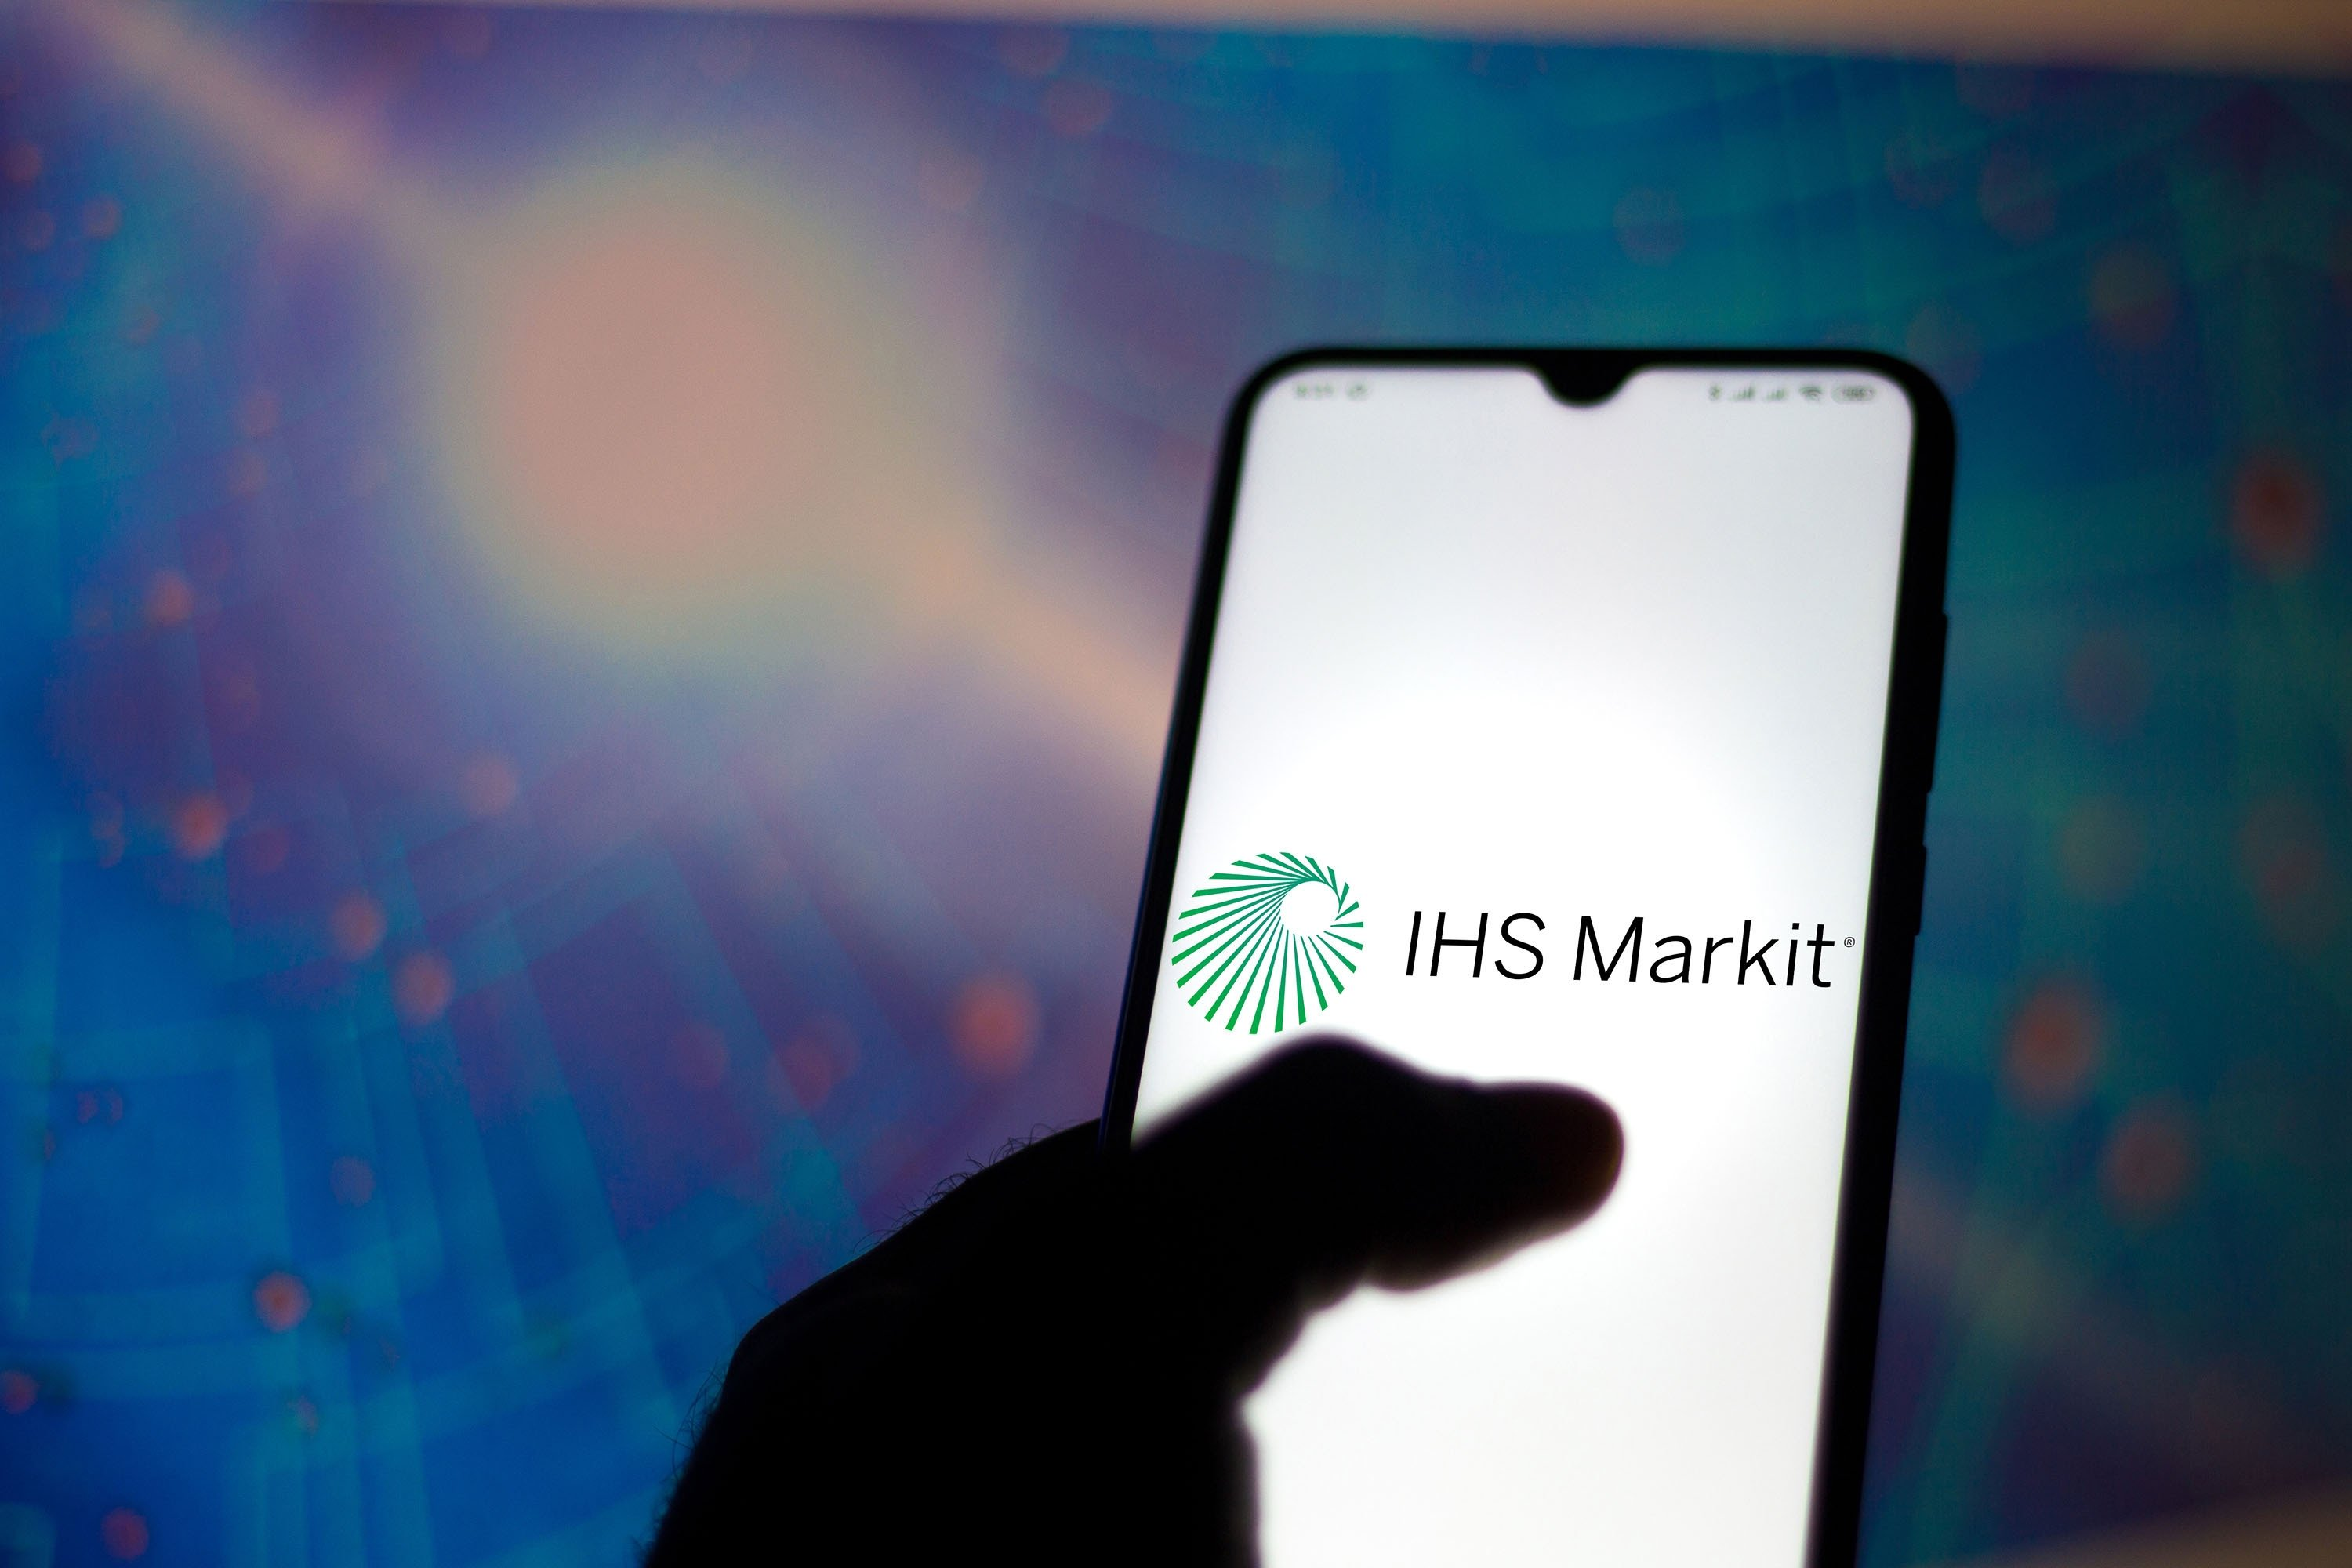 S&P Global sets to acquire IHS Markit for $44B deal: reports thumbnail